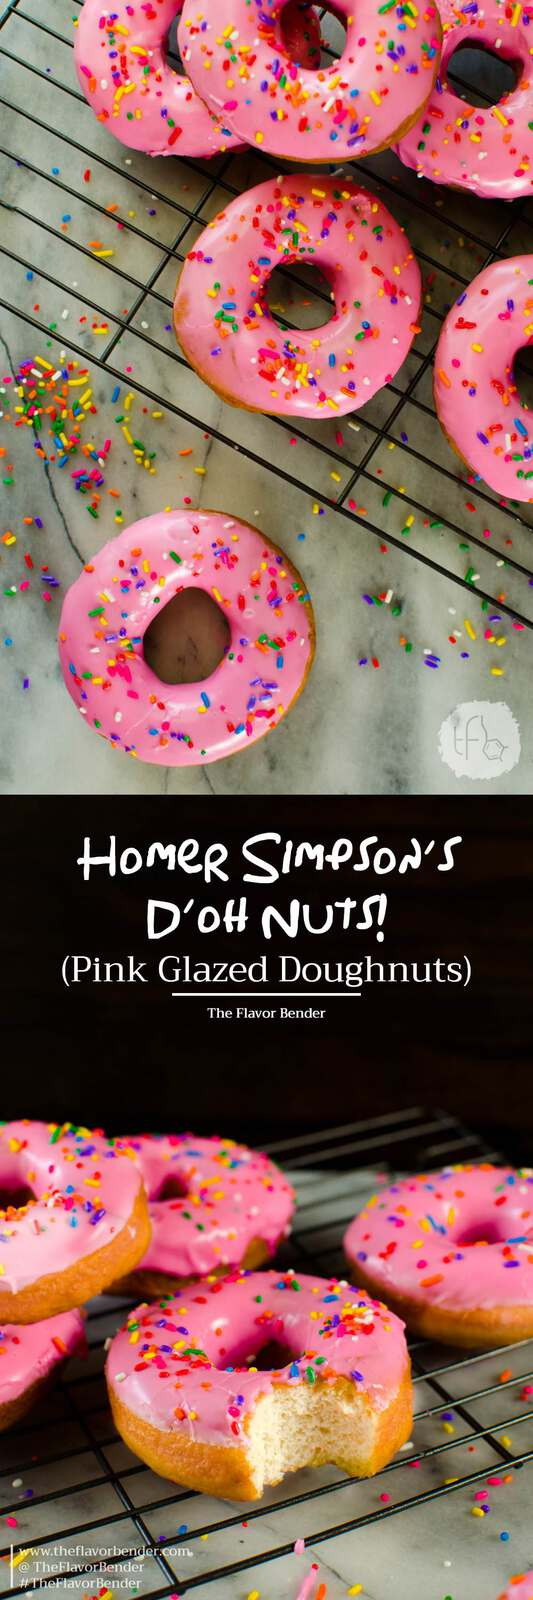 The Simpsons Doughnuts - These pink glazed doughnuts with sprinkles is Homer Simpsons favorite snack!  and now you can make them at home with a FULL TUTORIAL to make perfect doughnuts everytime!